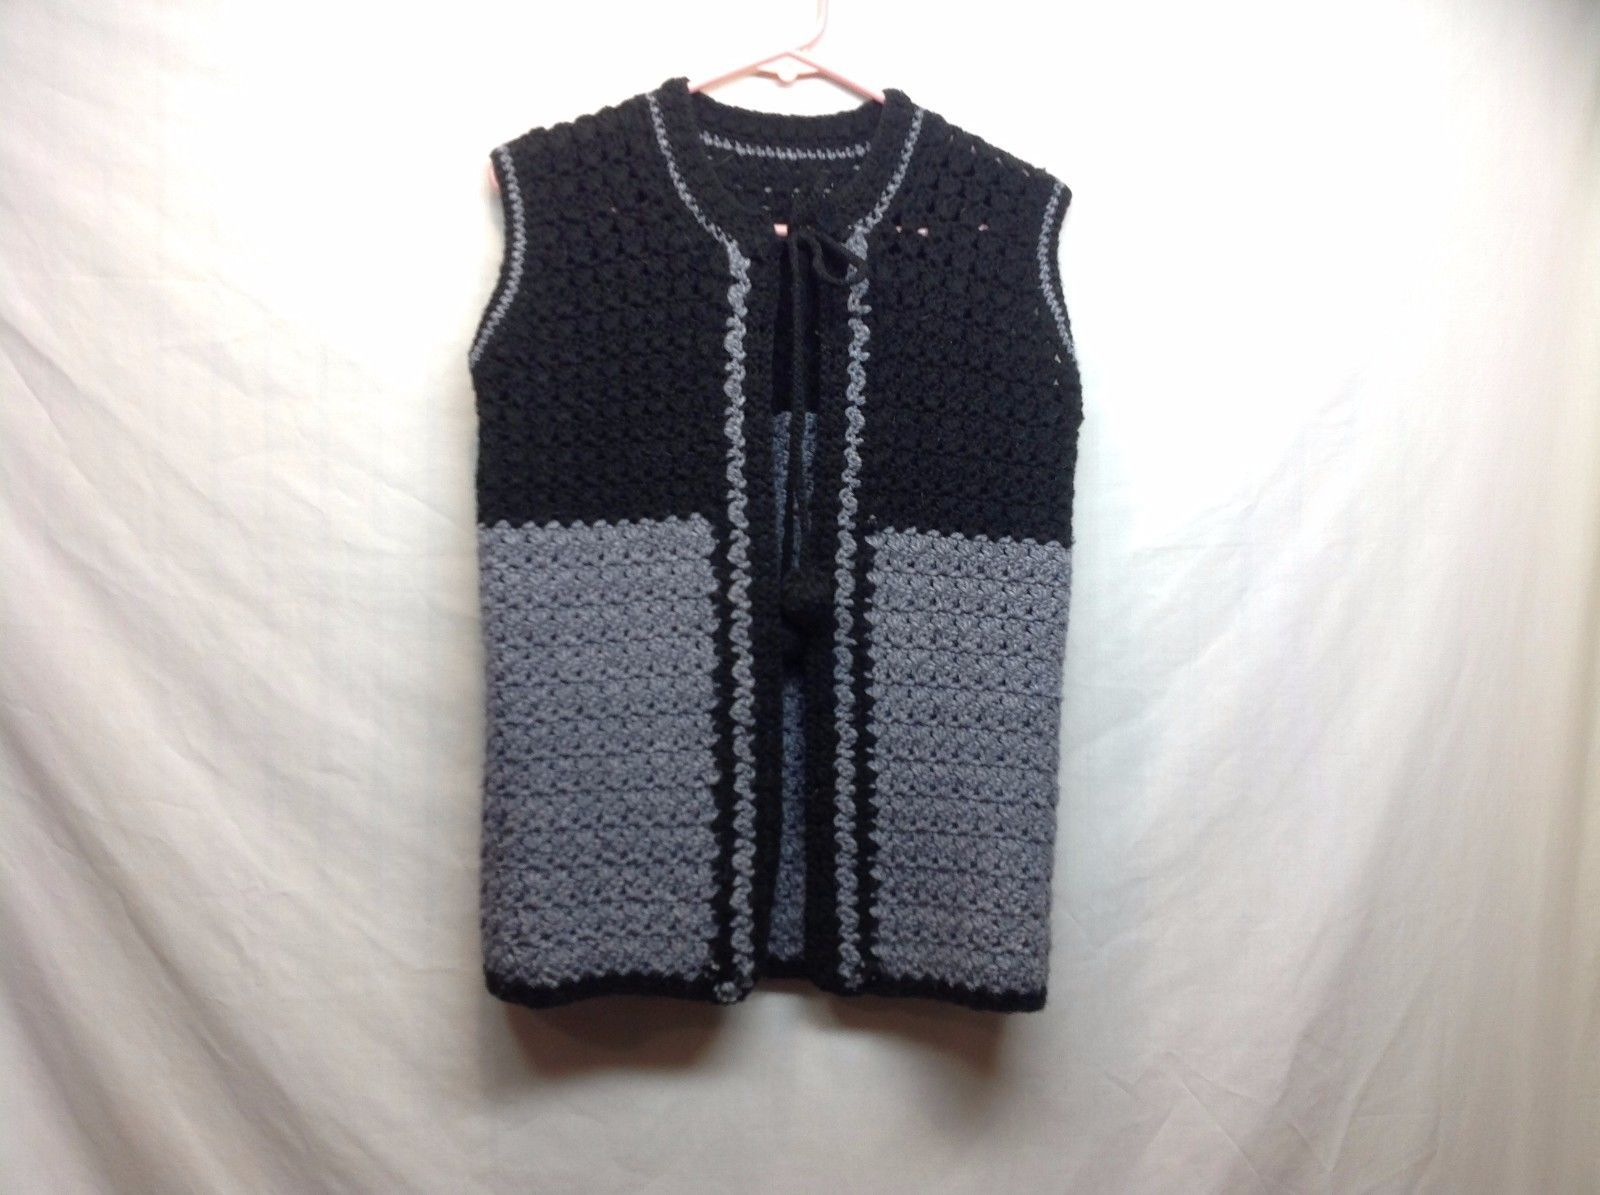 Women's Black Knit Sleeveless Sweatervest w Lt Gray Accents